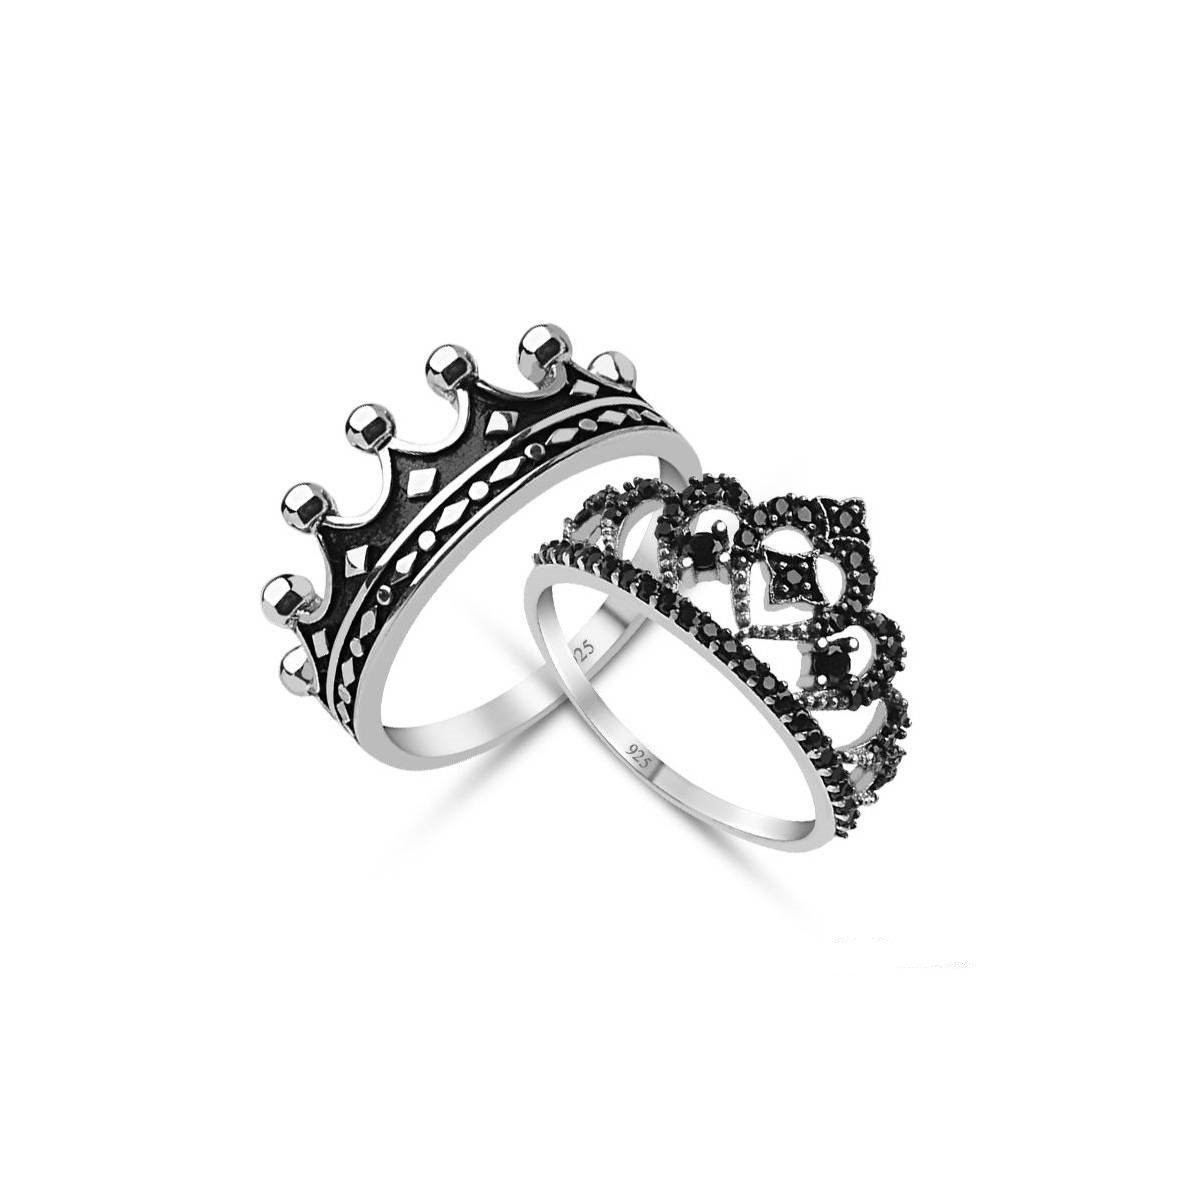 King Queencrown Ring Set18k Gold Plated Silver Crown Ring Set